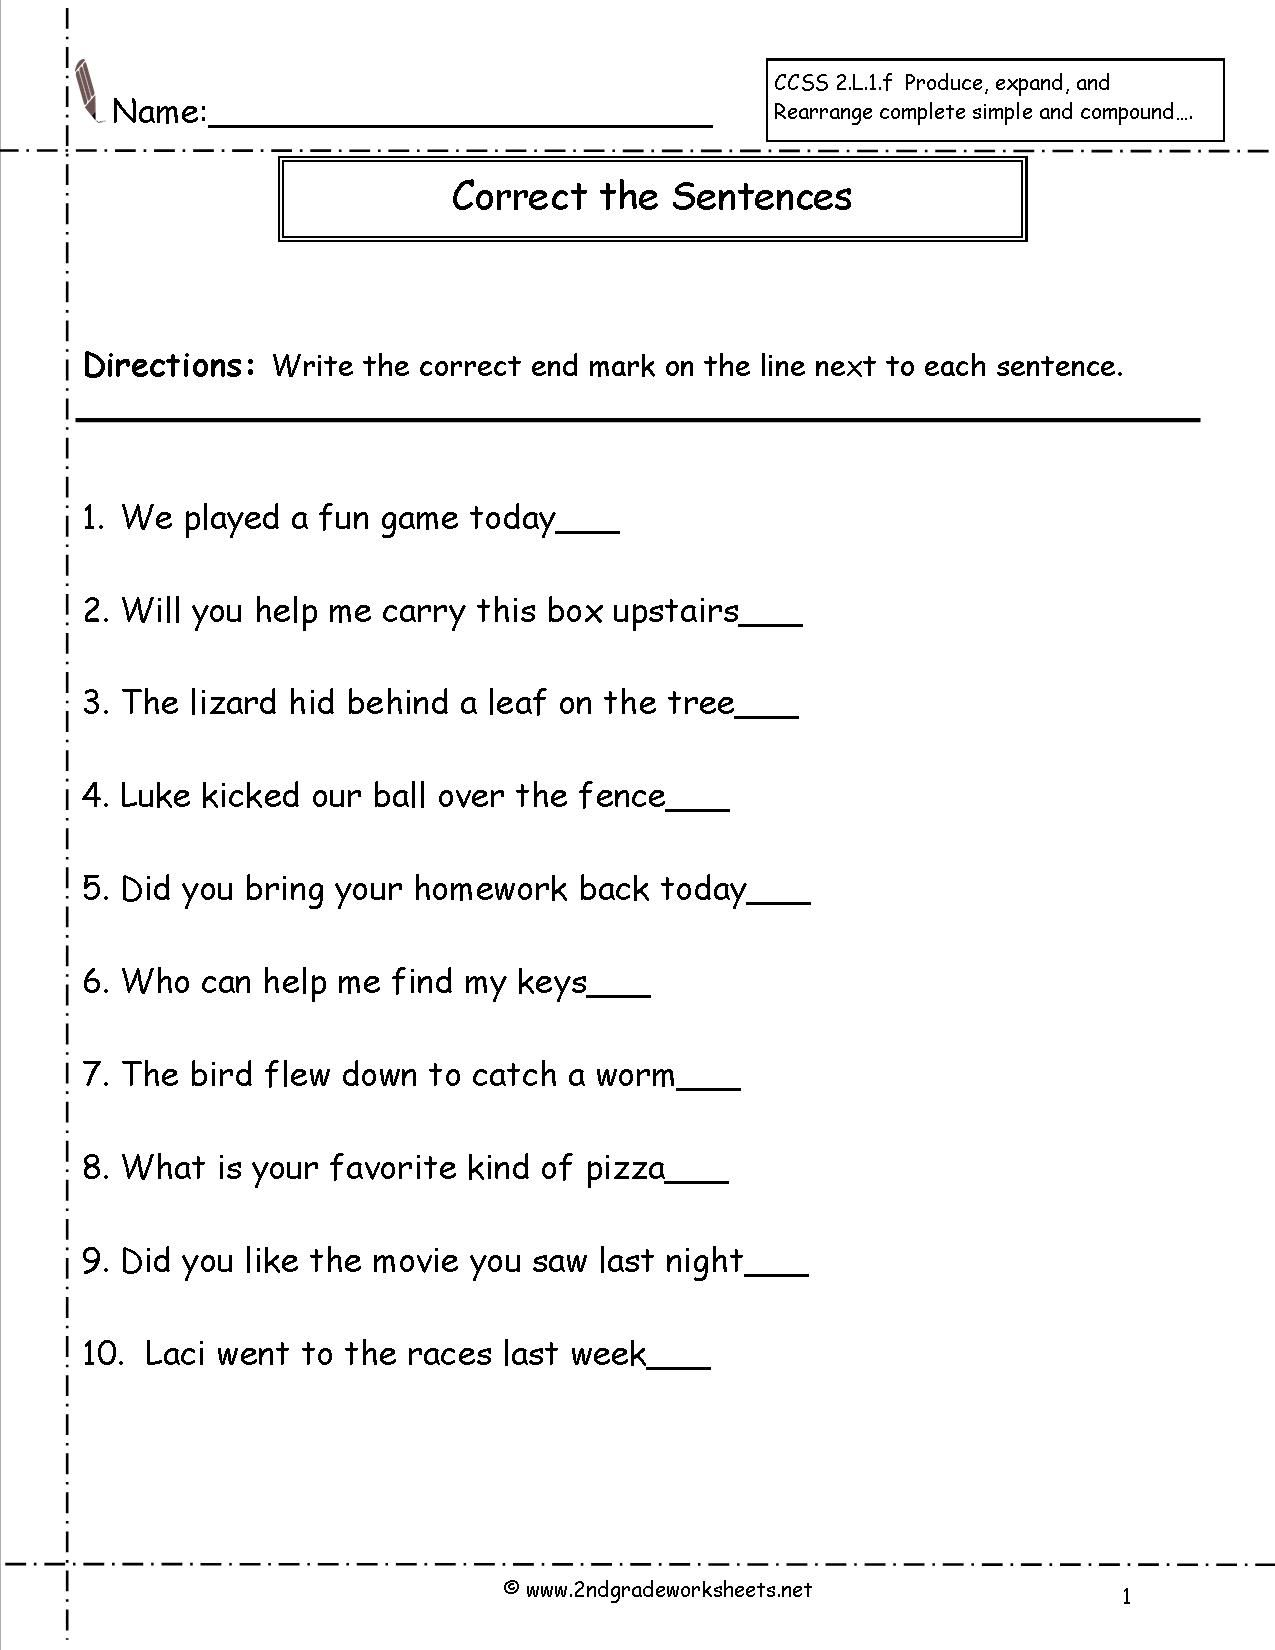 Free second grade worksheets Homeschooling – Why Questions Worksheet